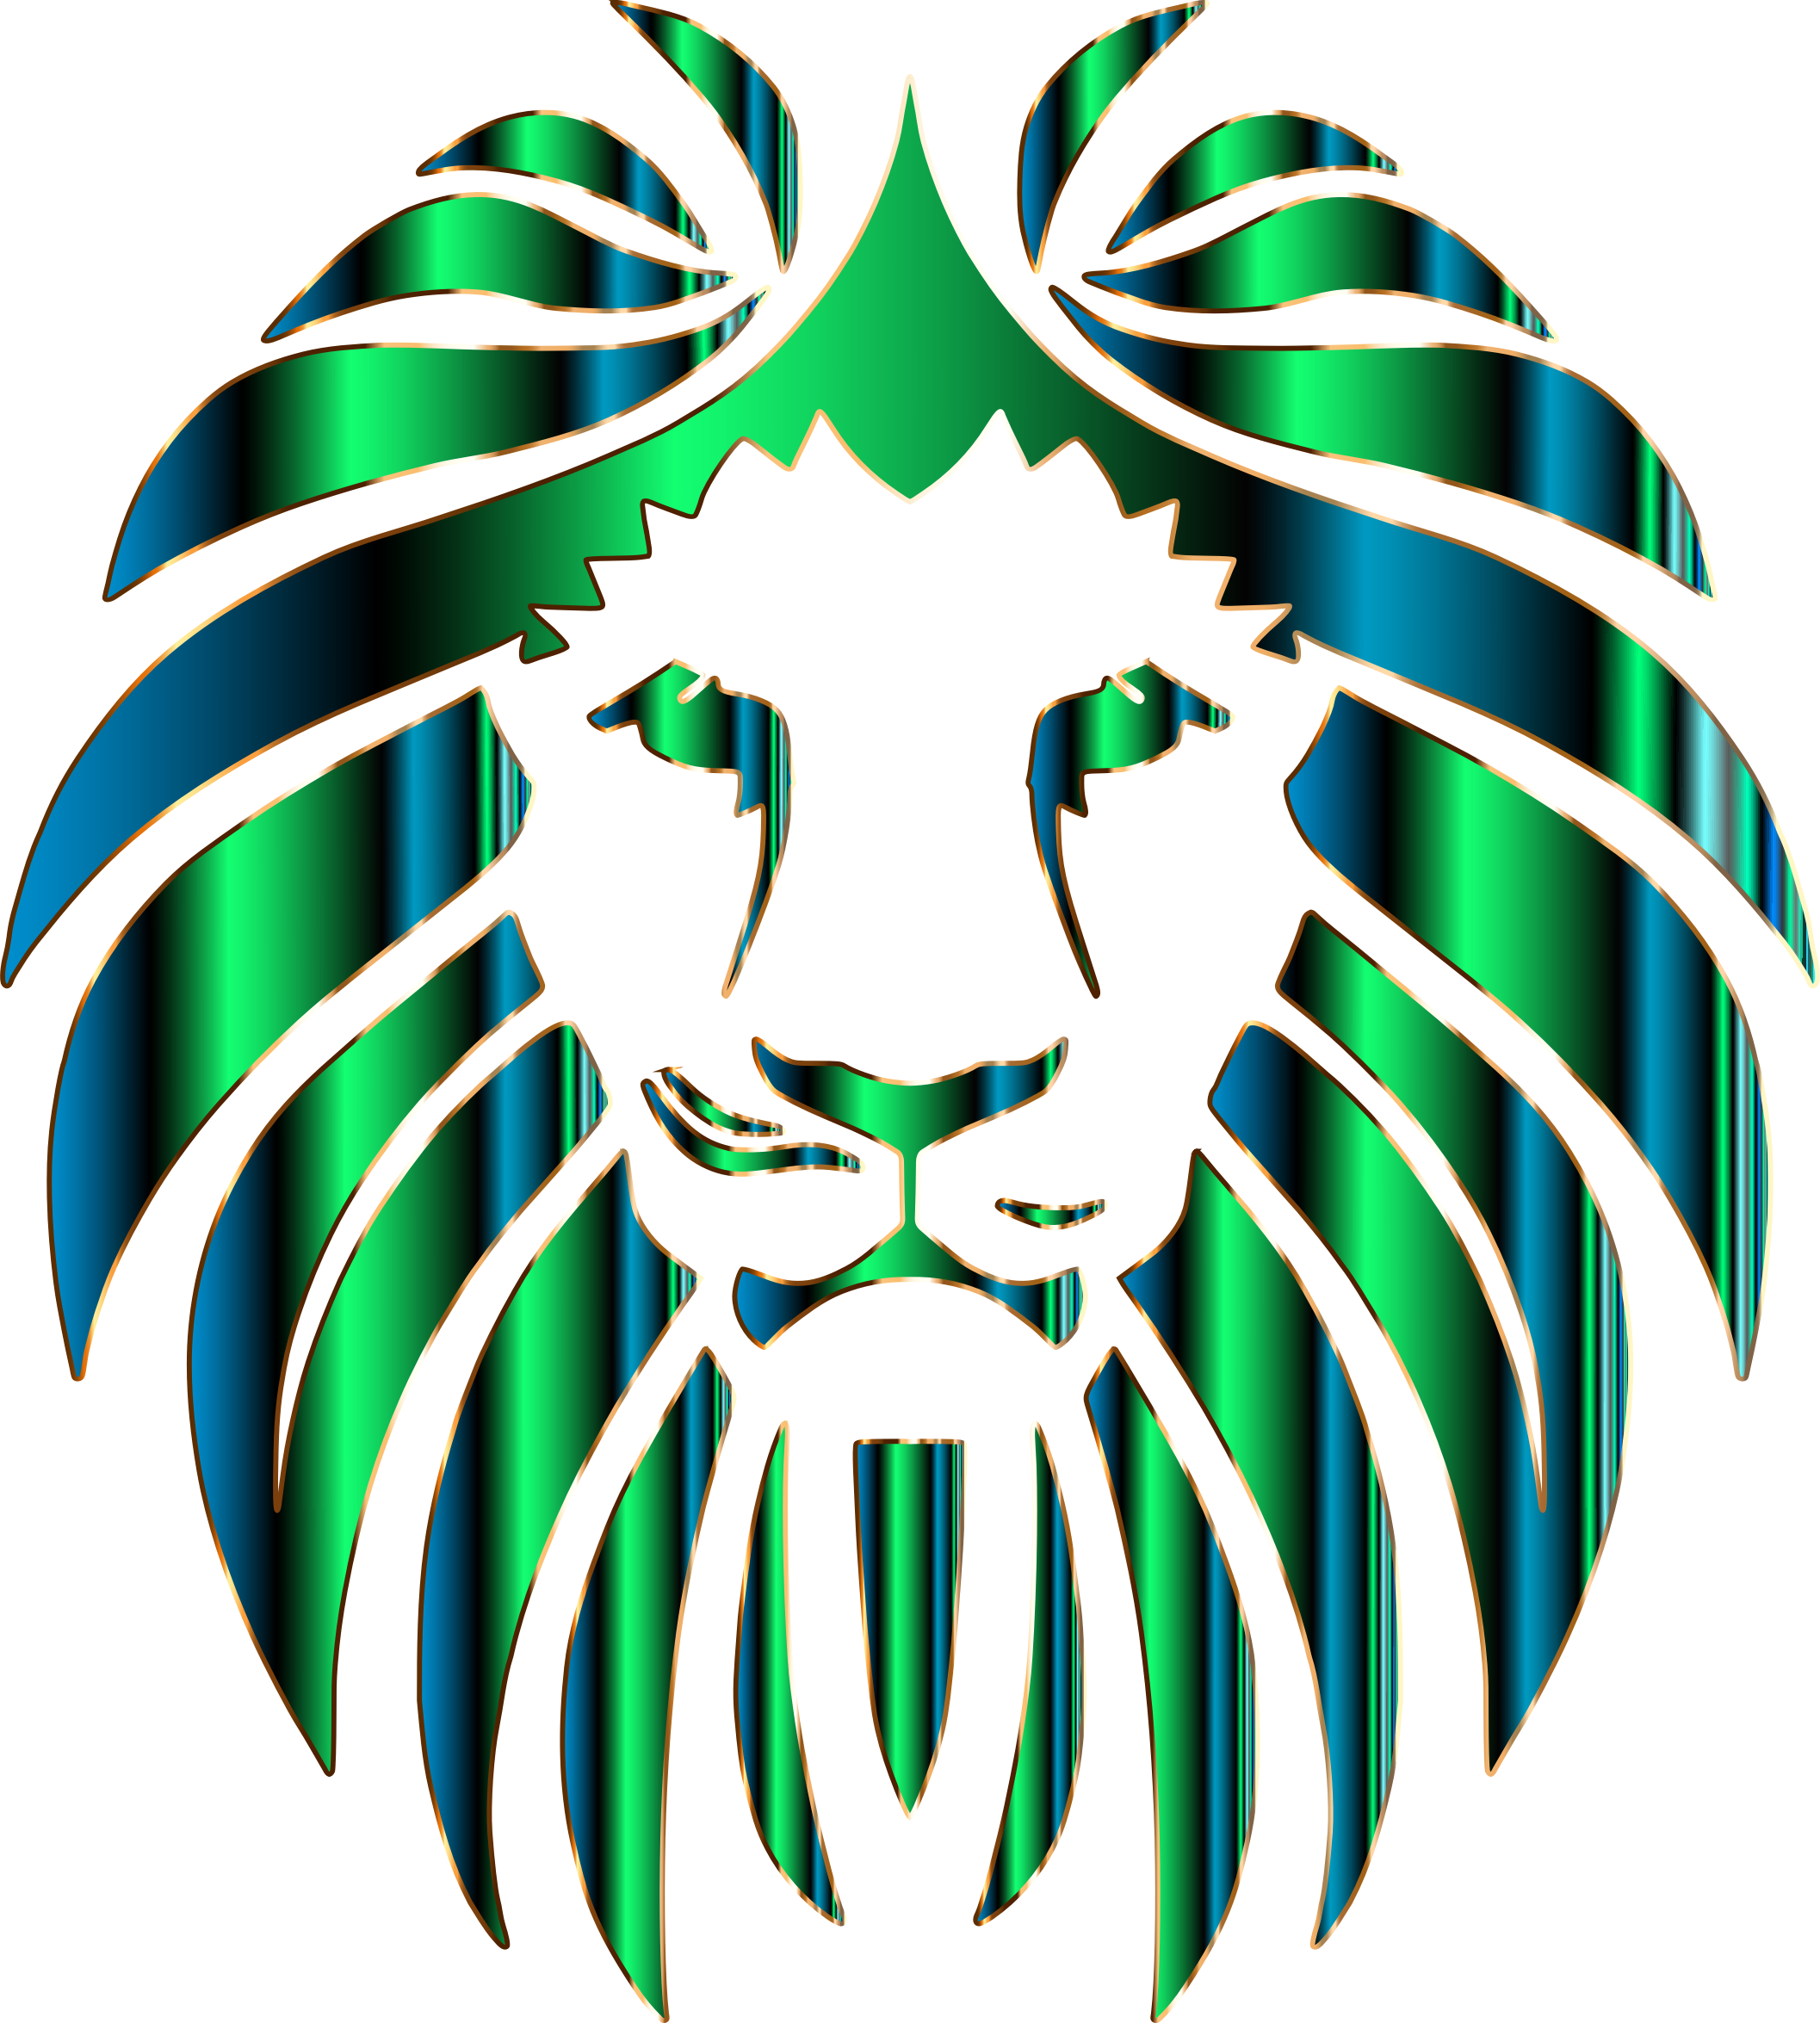 Prismatic Lion 11 No Background by GDJ